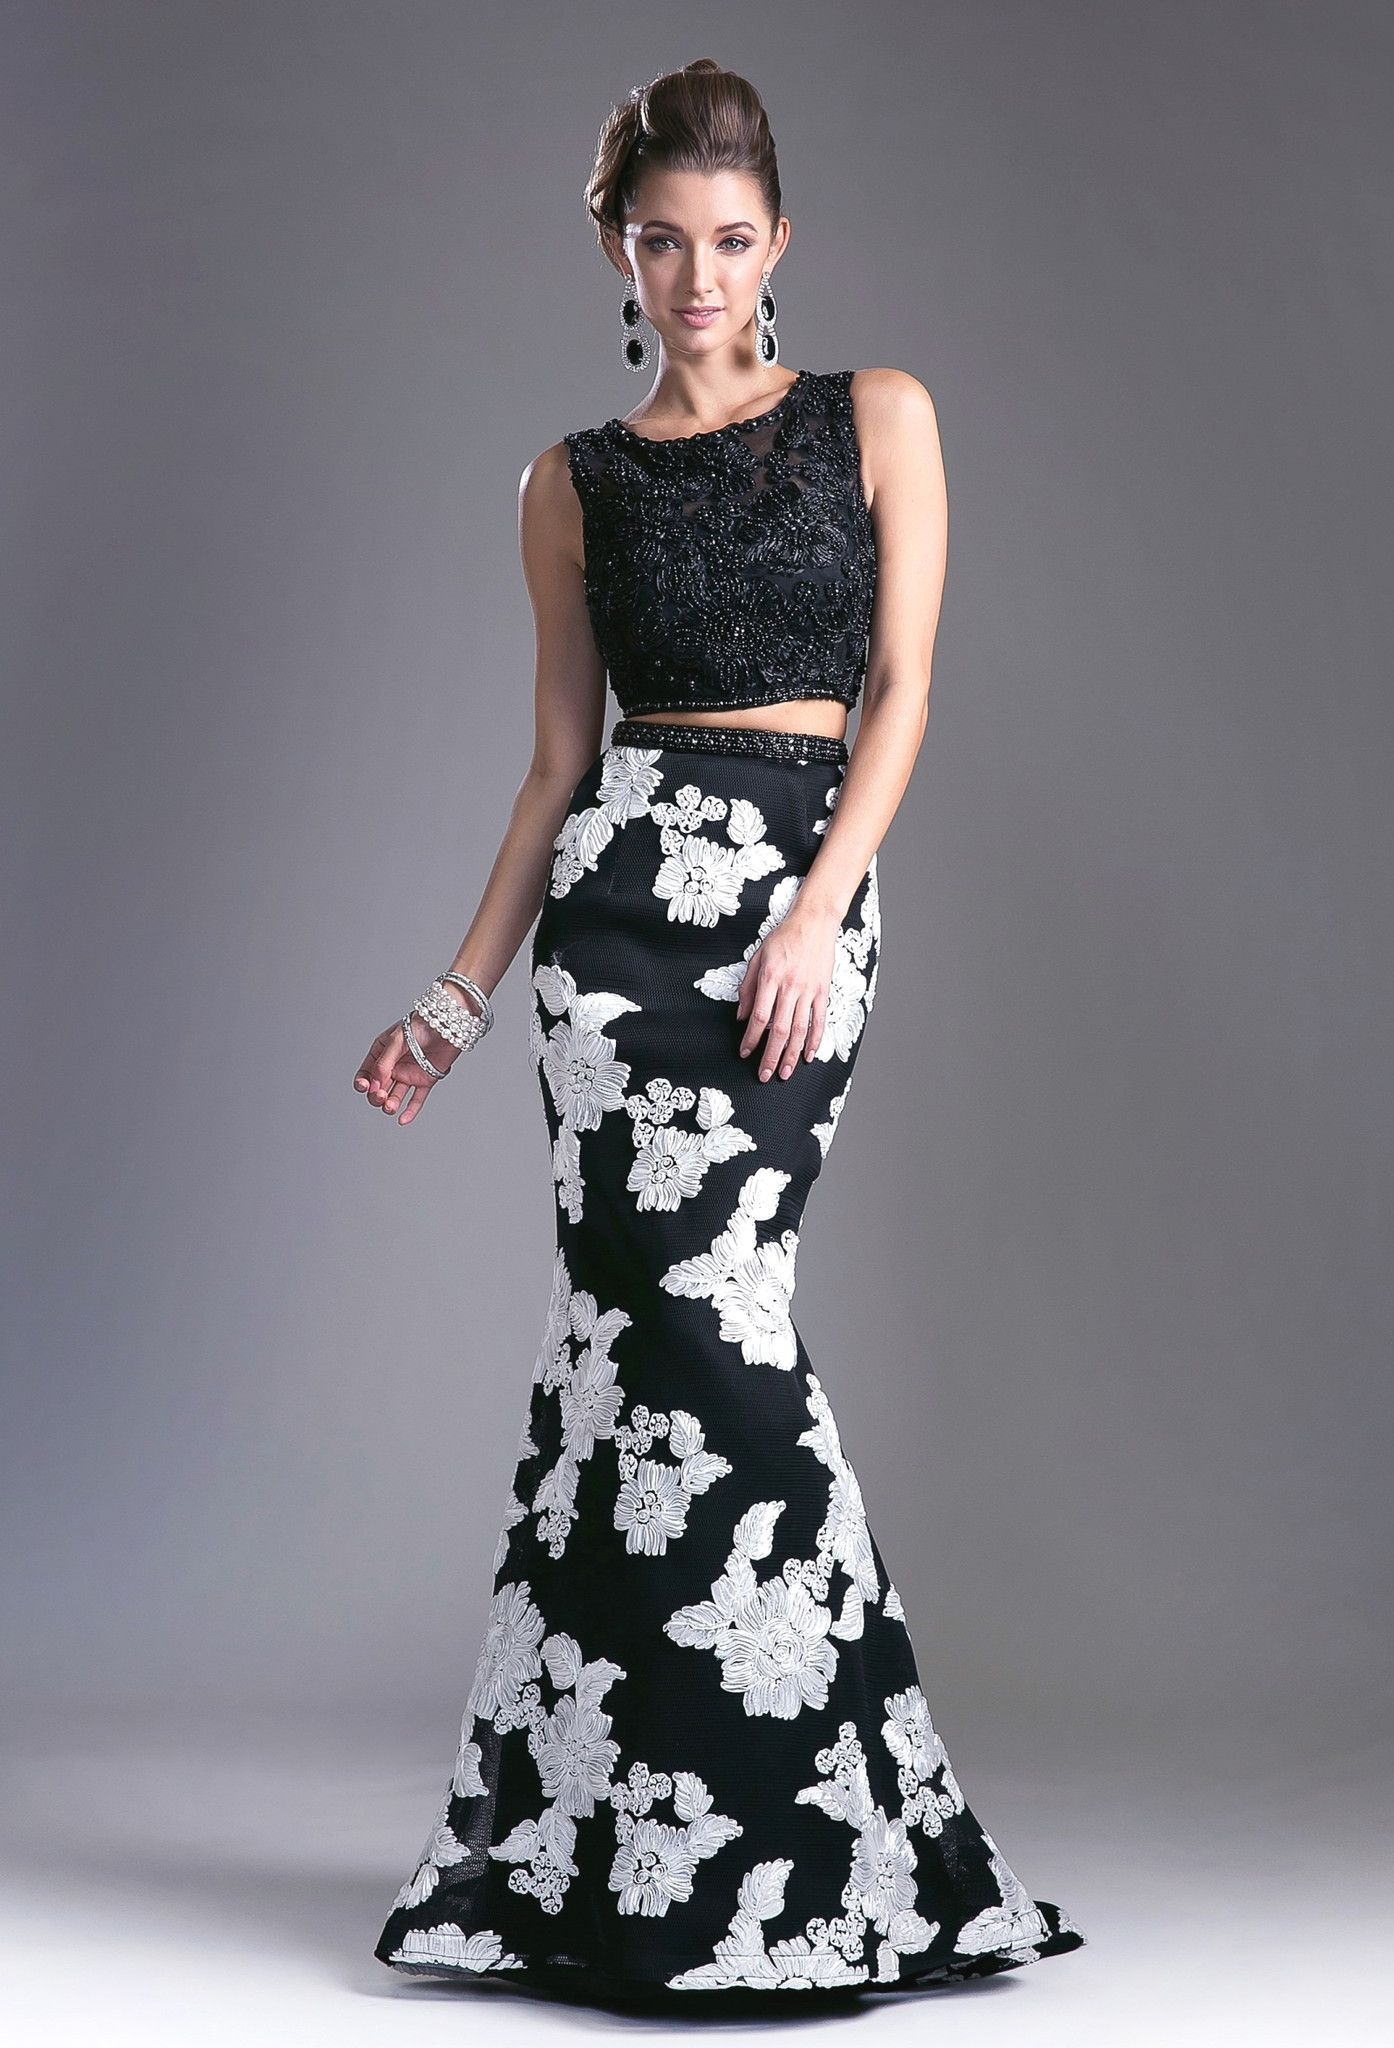 Long two piece dress with floral skirt by cinderella divine